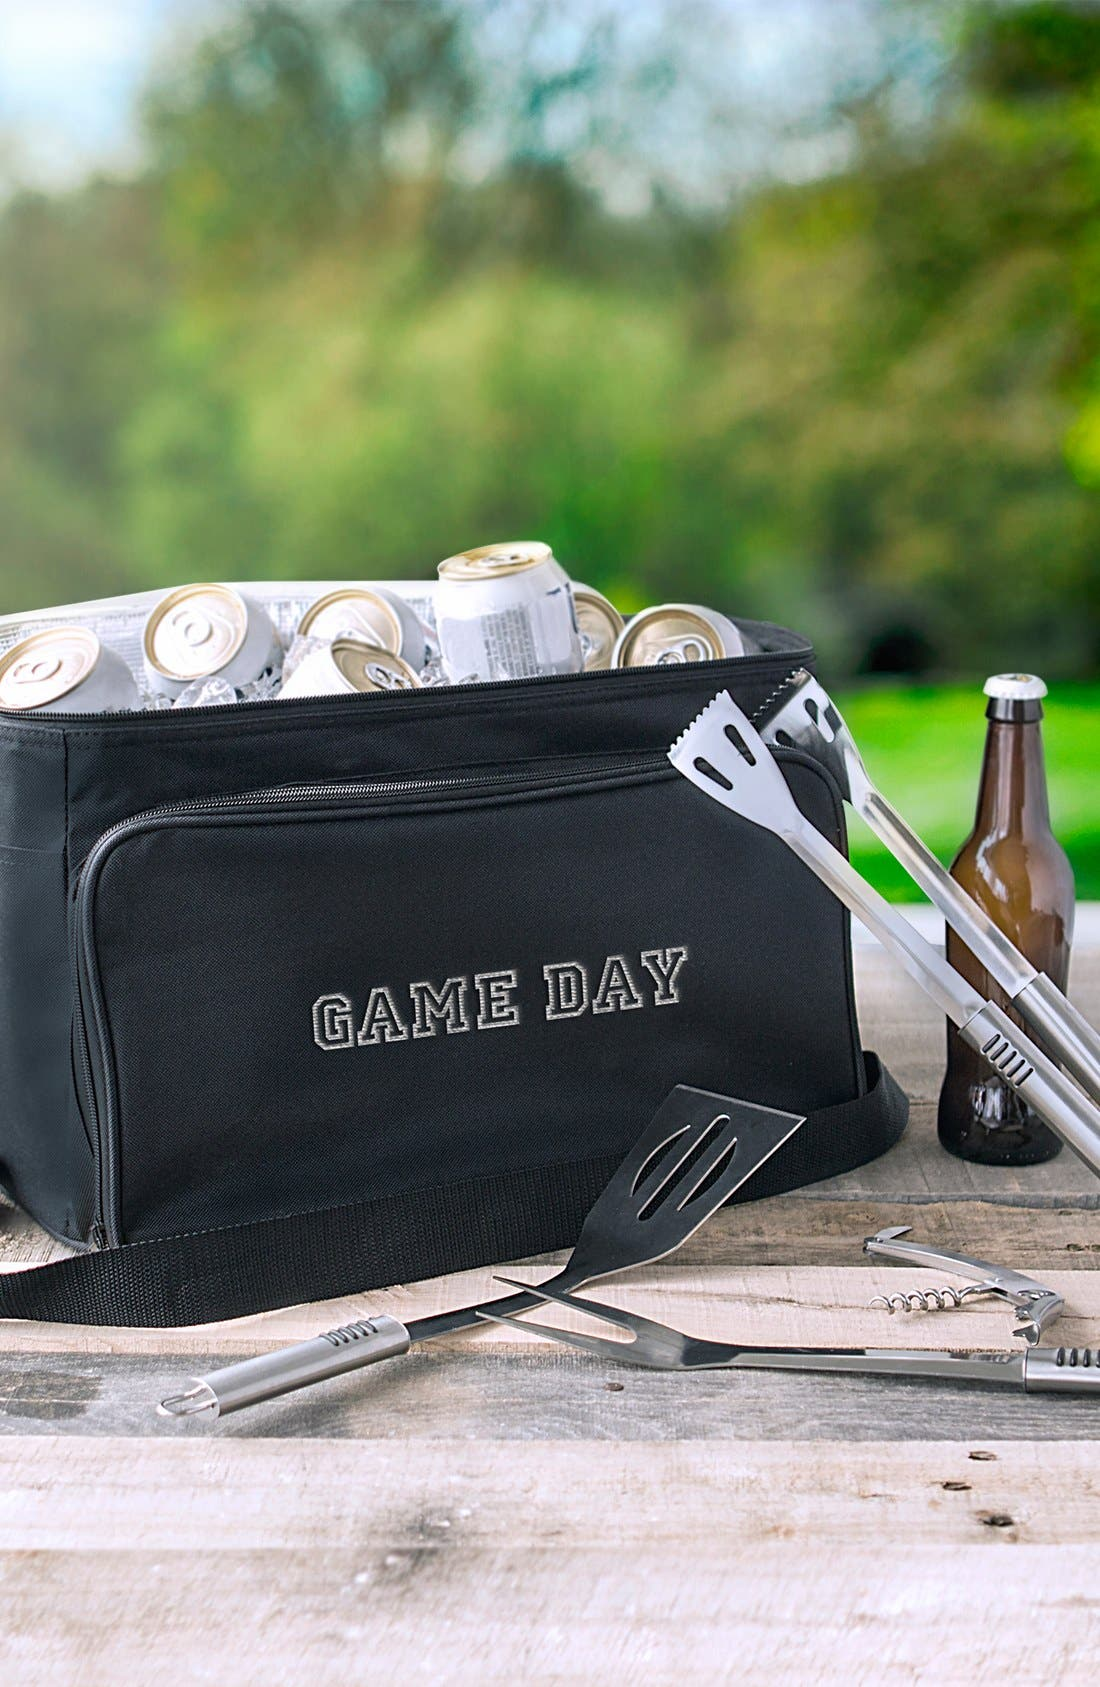 'Game Day' Cooler & BBQ Tool Set,                             Alternate thumbnail 6, color,                             001